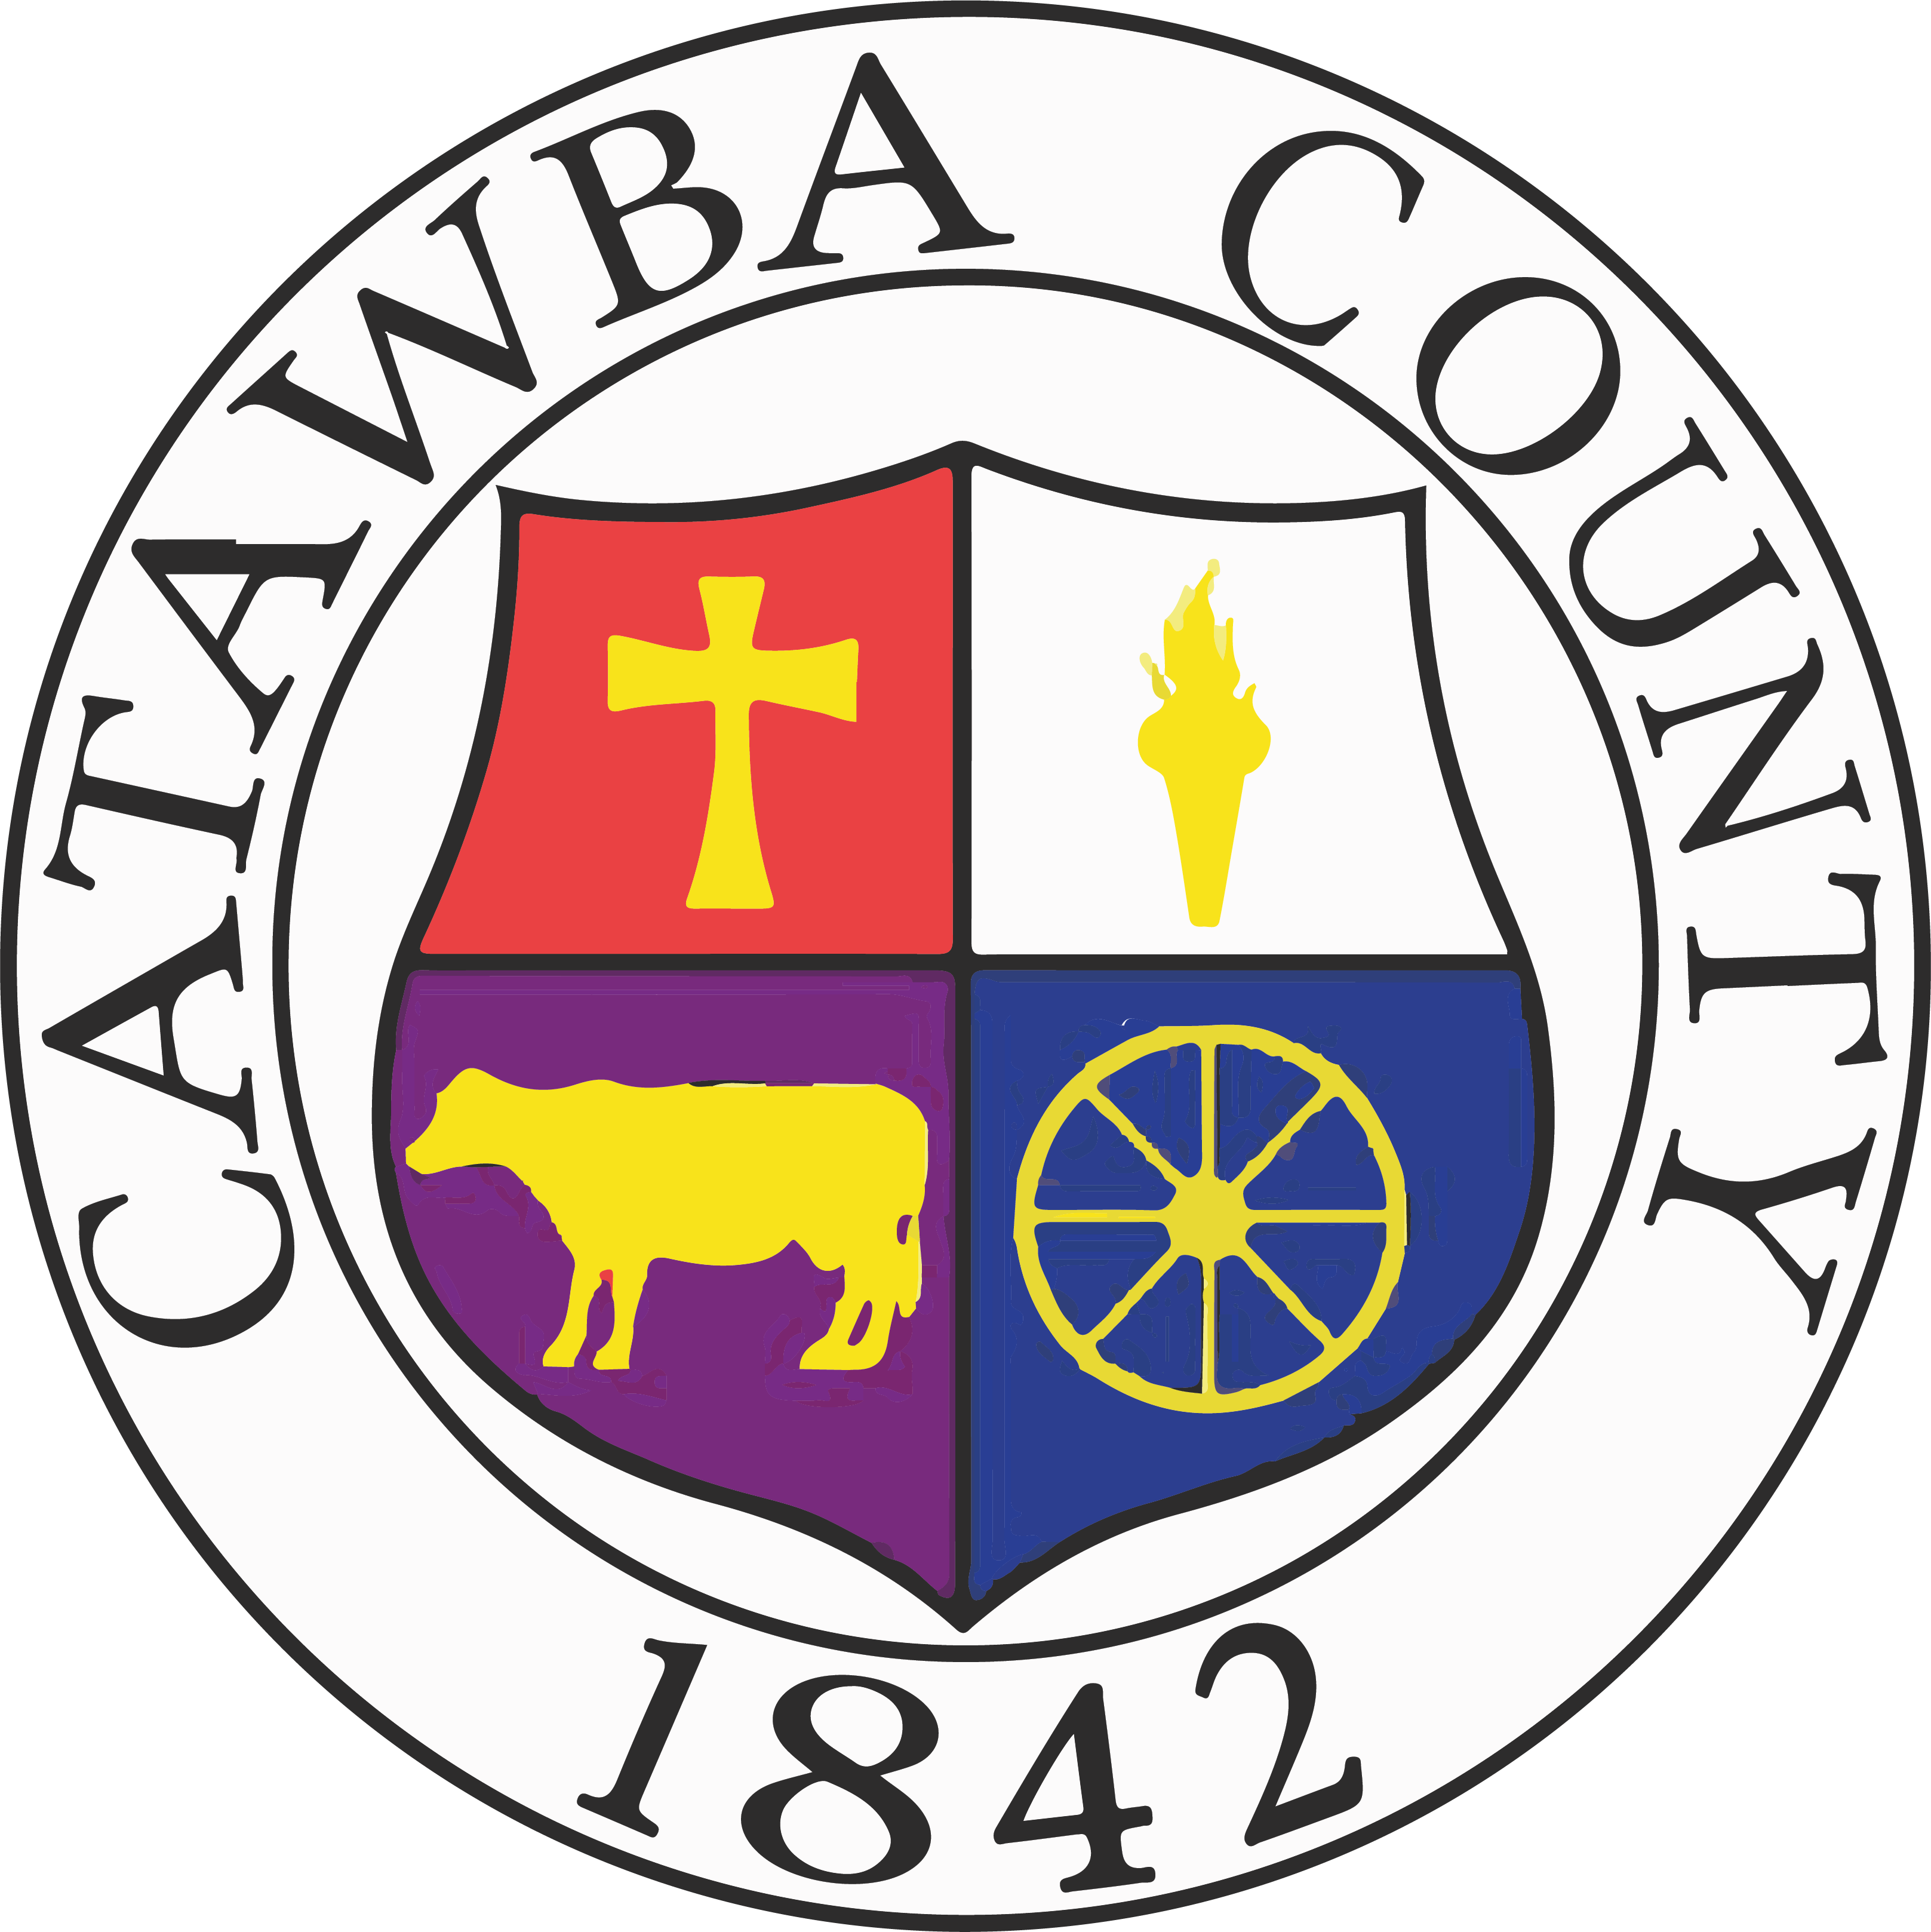 Statement by Catawba County Commissioner Randy Isenhower regarding Governor Cooper's statewide Stay at Home Executive Order